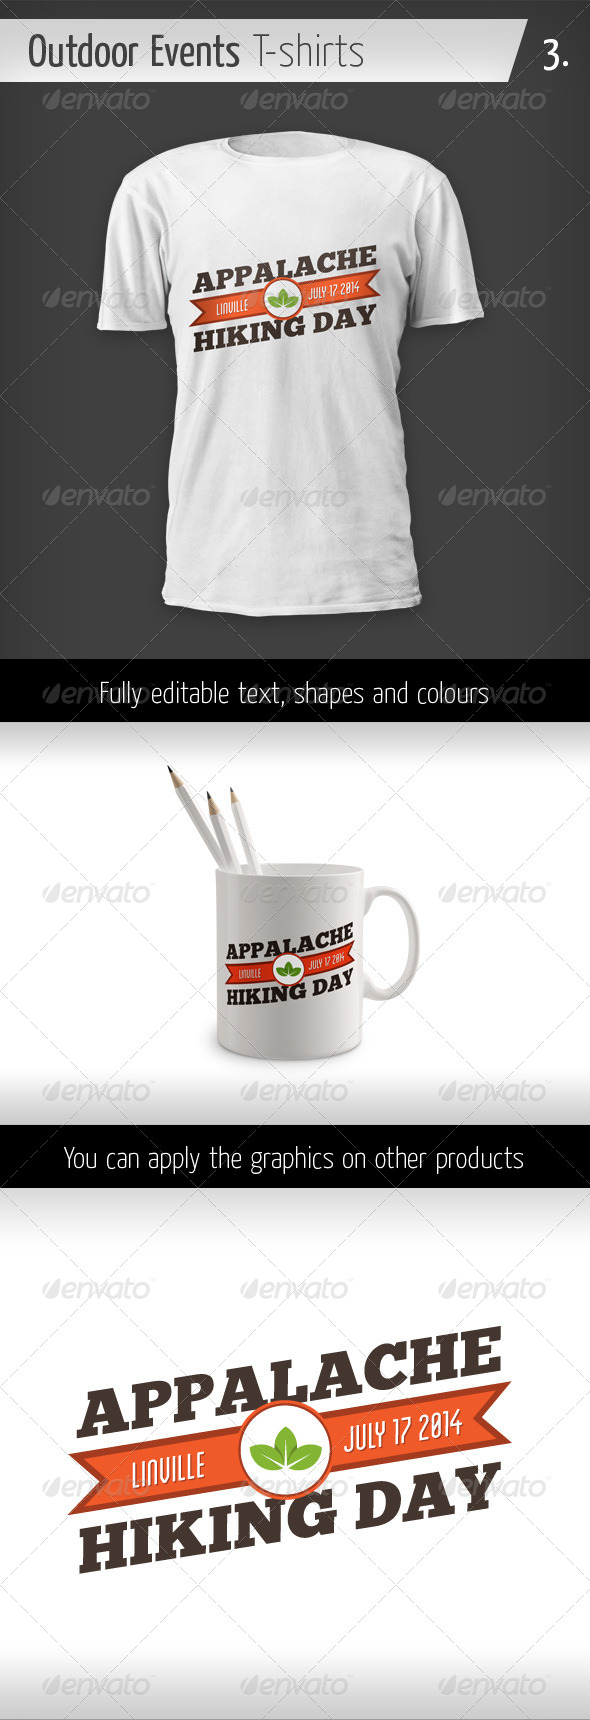 GraphicRiver Outdoor Events T-shirts Hiking Day 6436172